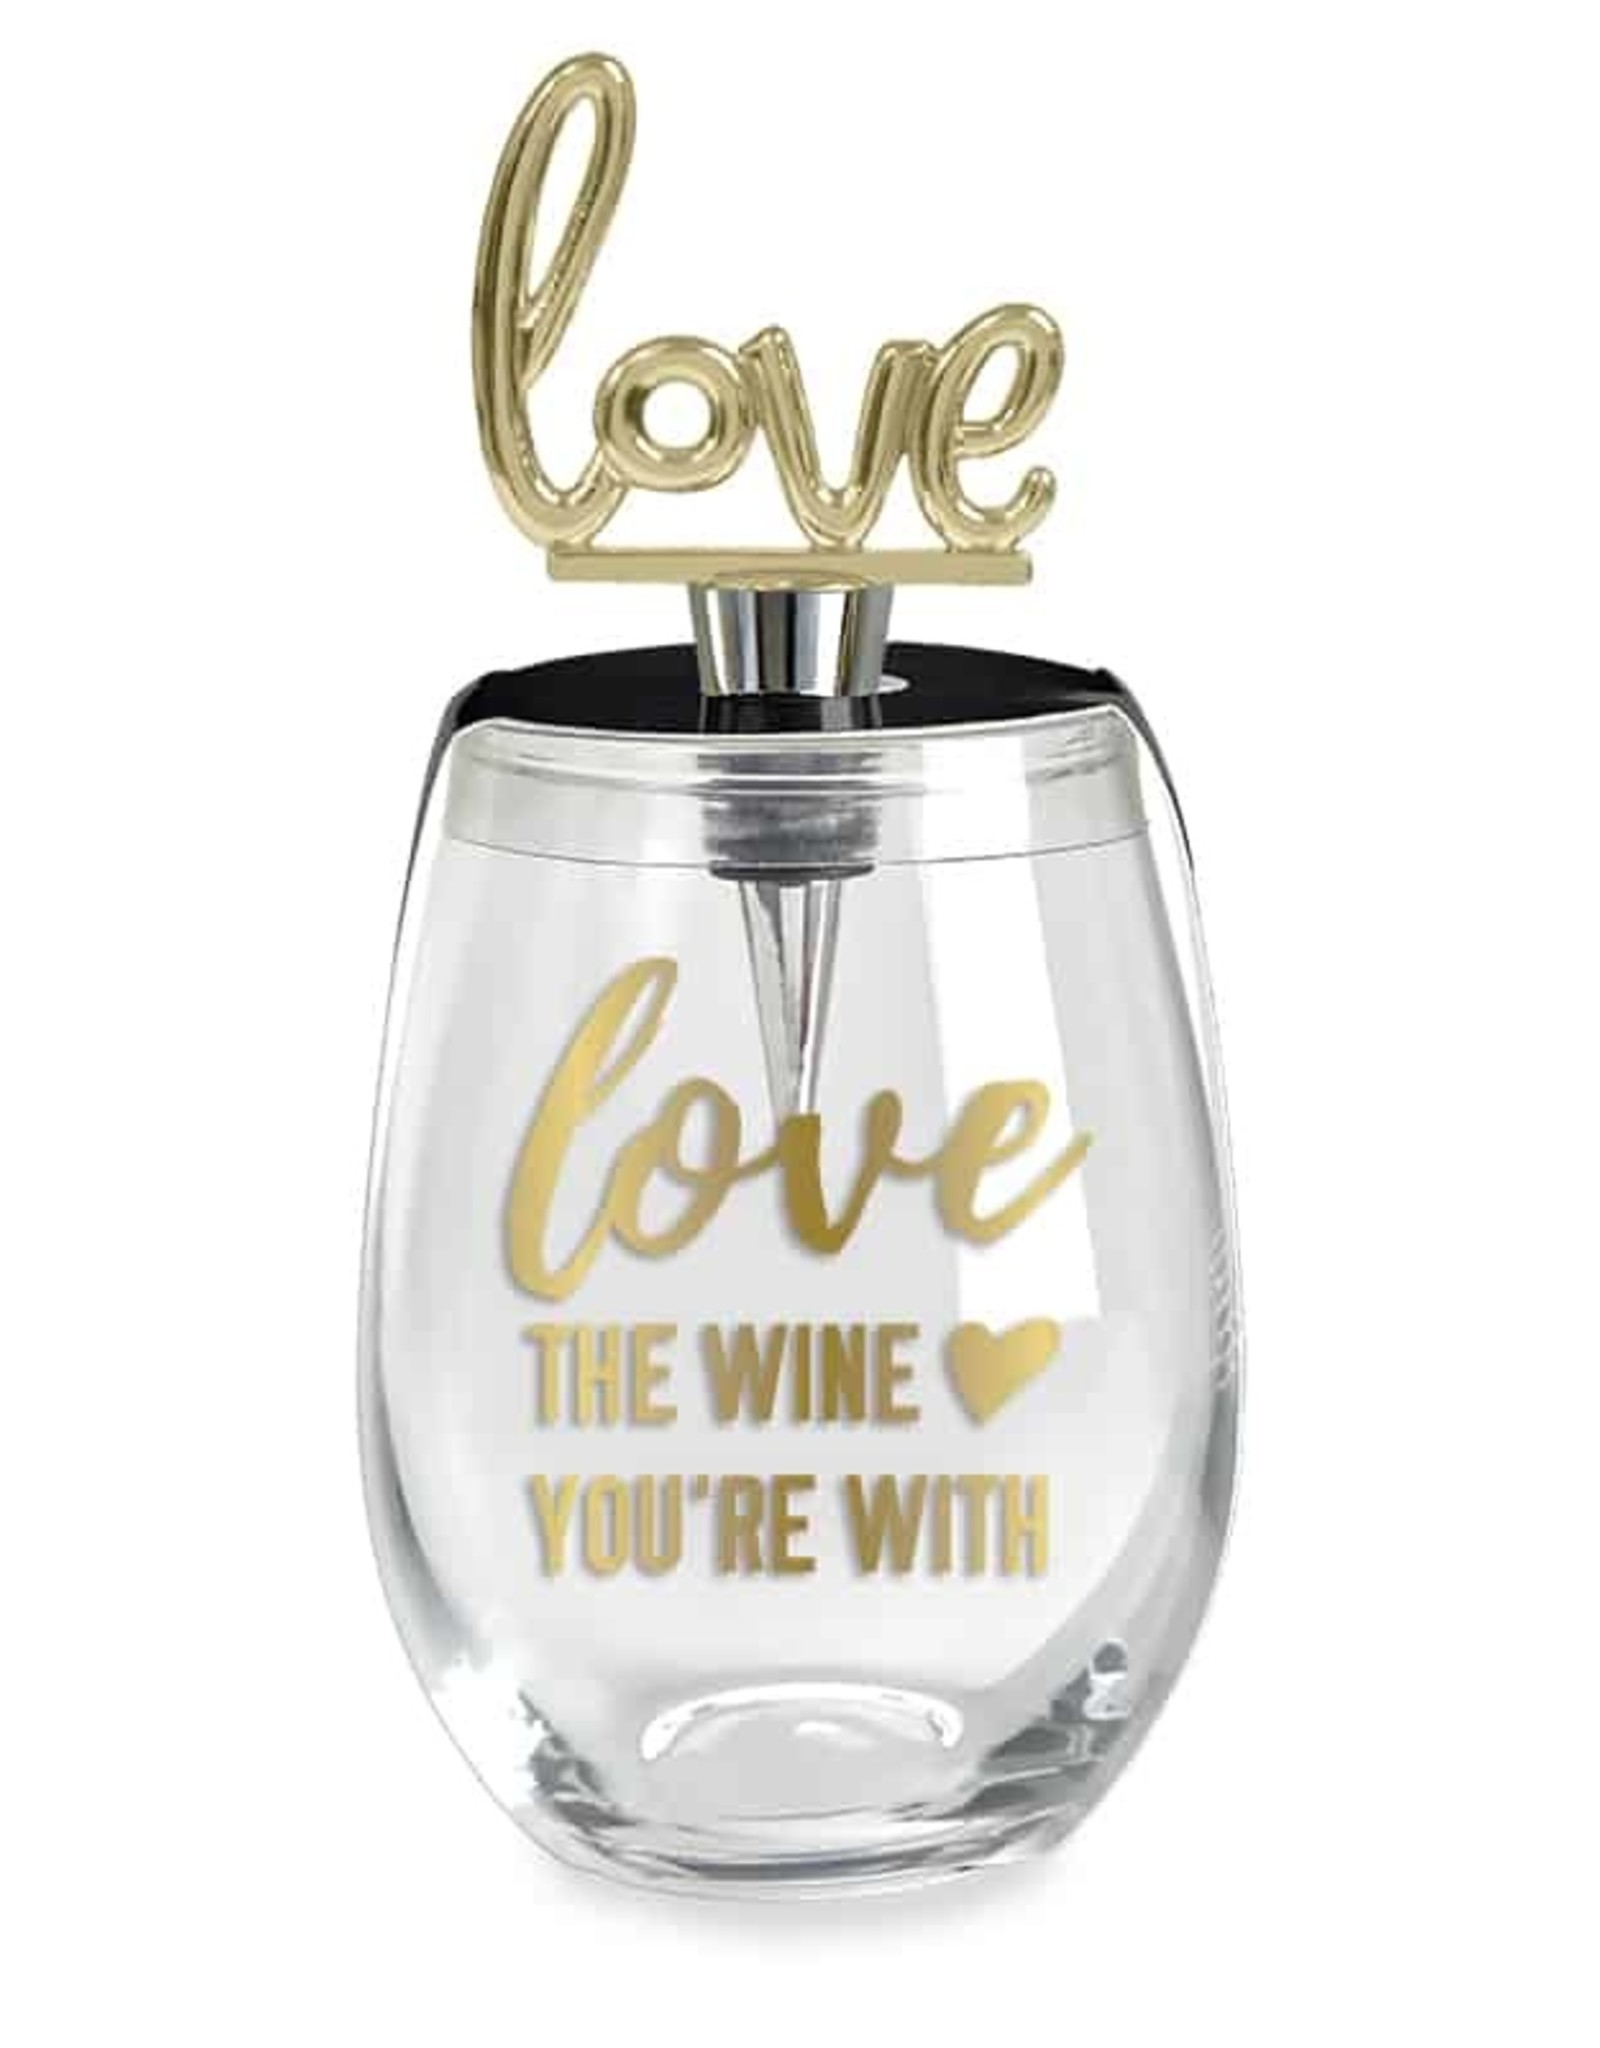 Wild Eye Wine Glass Stopper Set Love the Wine You're With